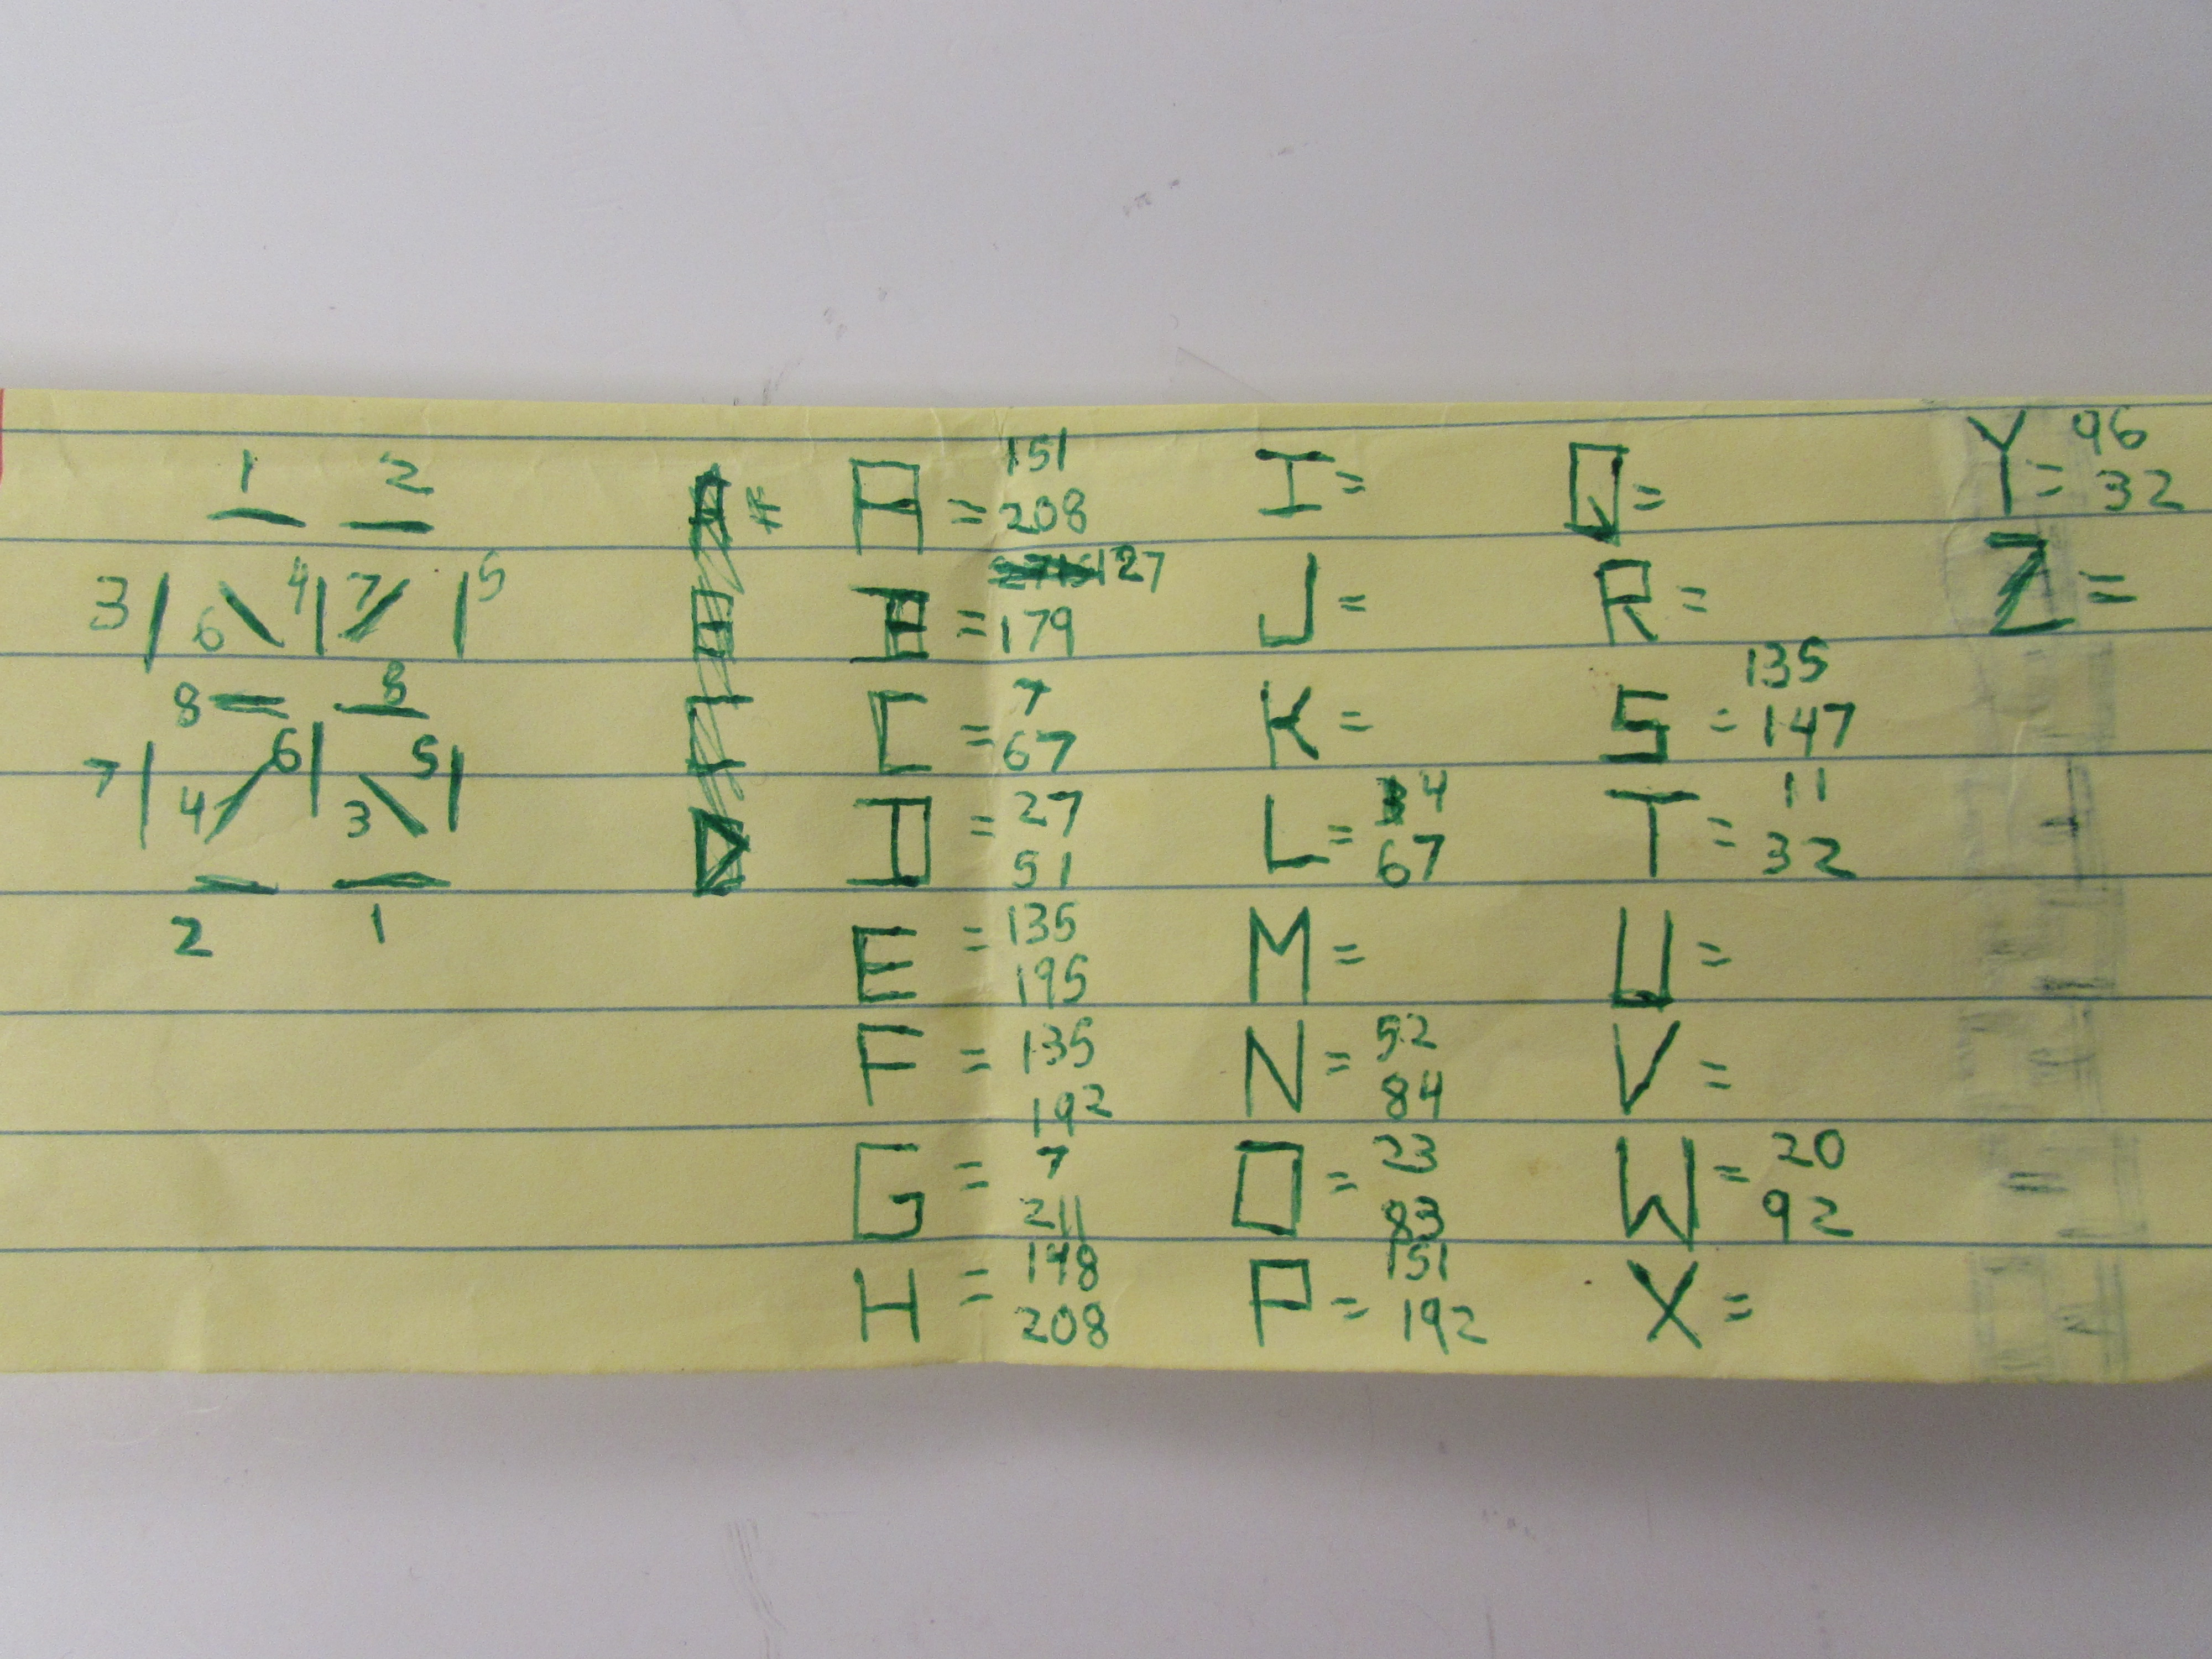 My cheat sheet for figuring out the patterns for the different letters.